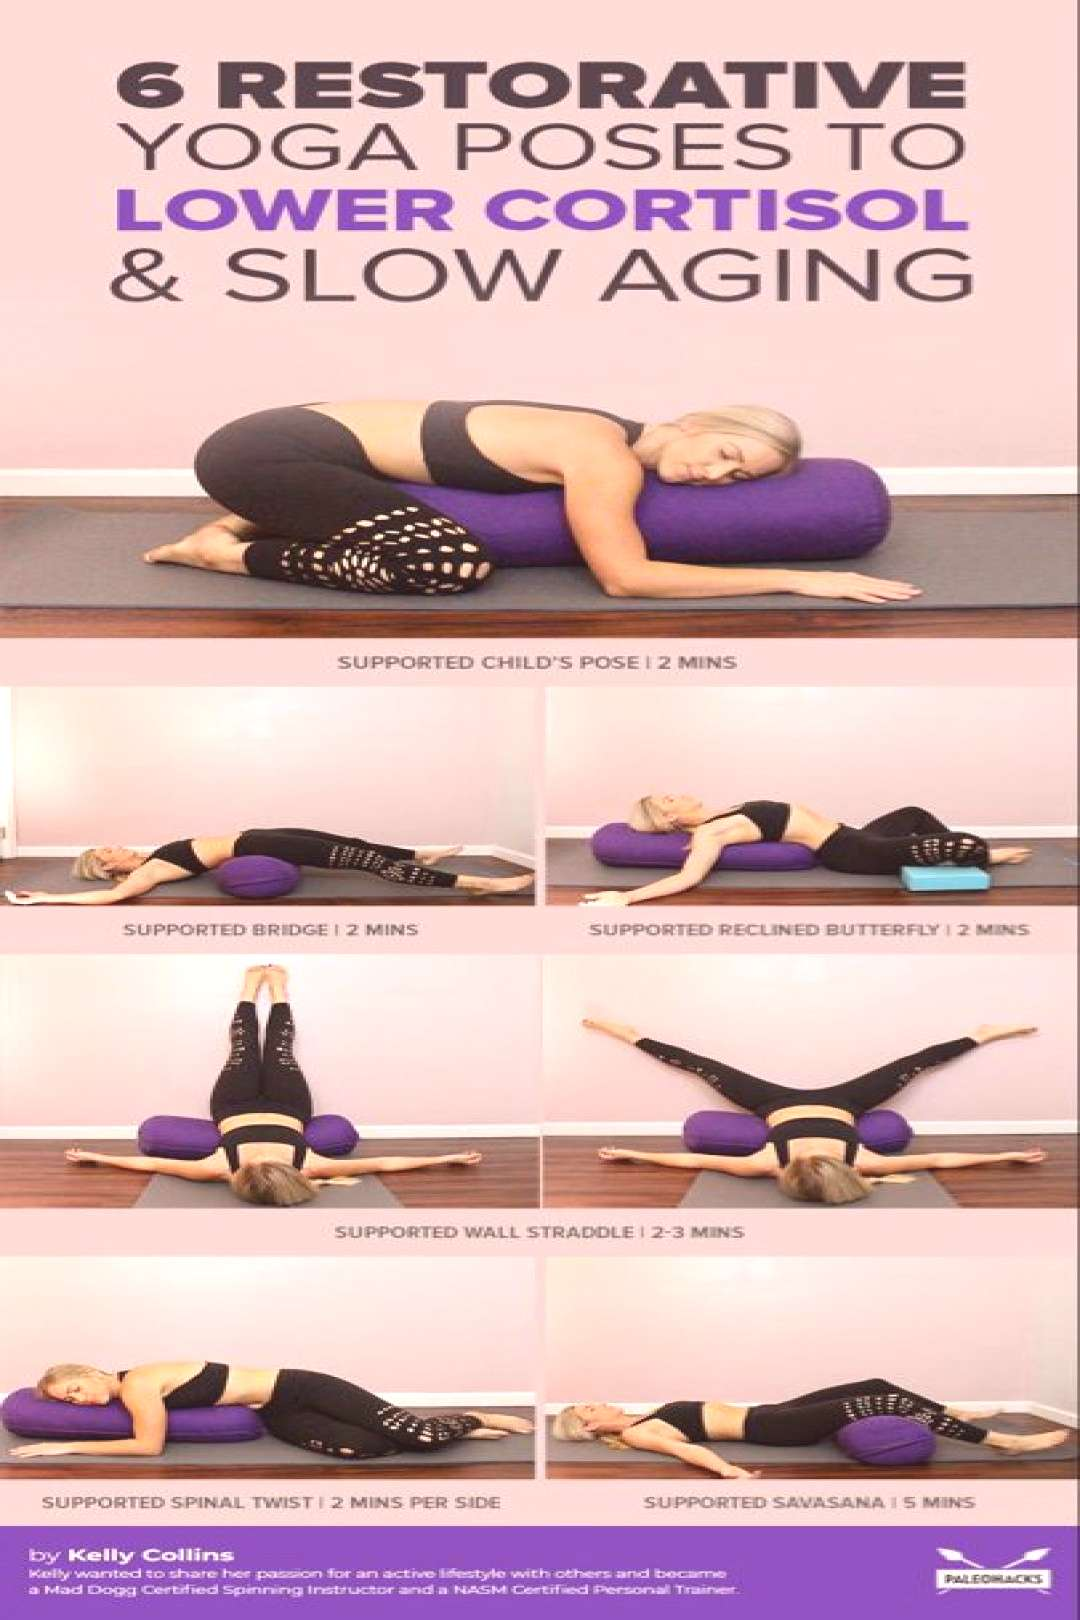 6 Restorative Yoga Poses To Lower Cortisol & Slow Aging | Gentle, Easy